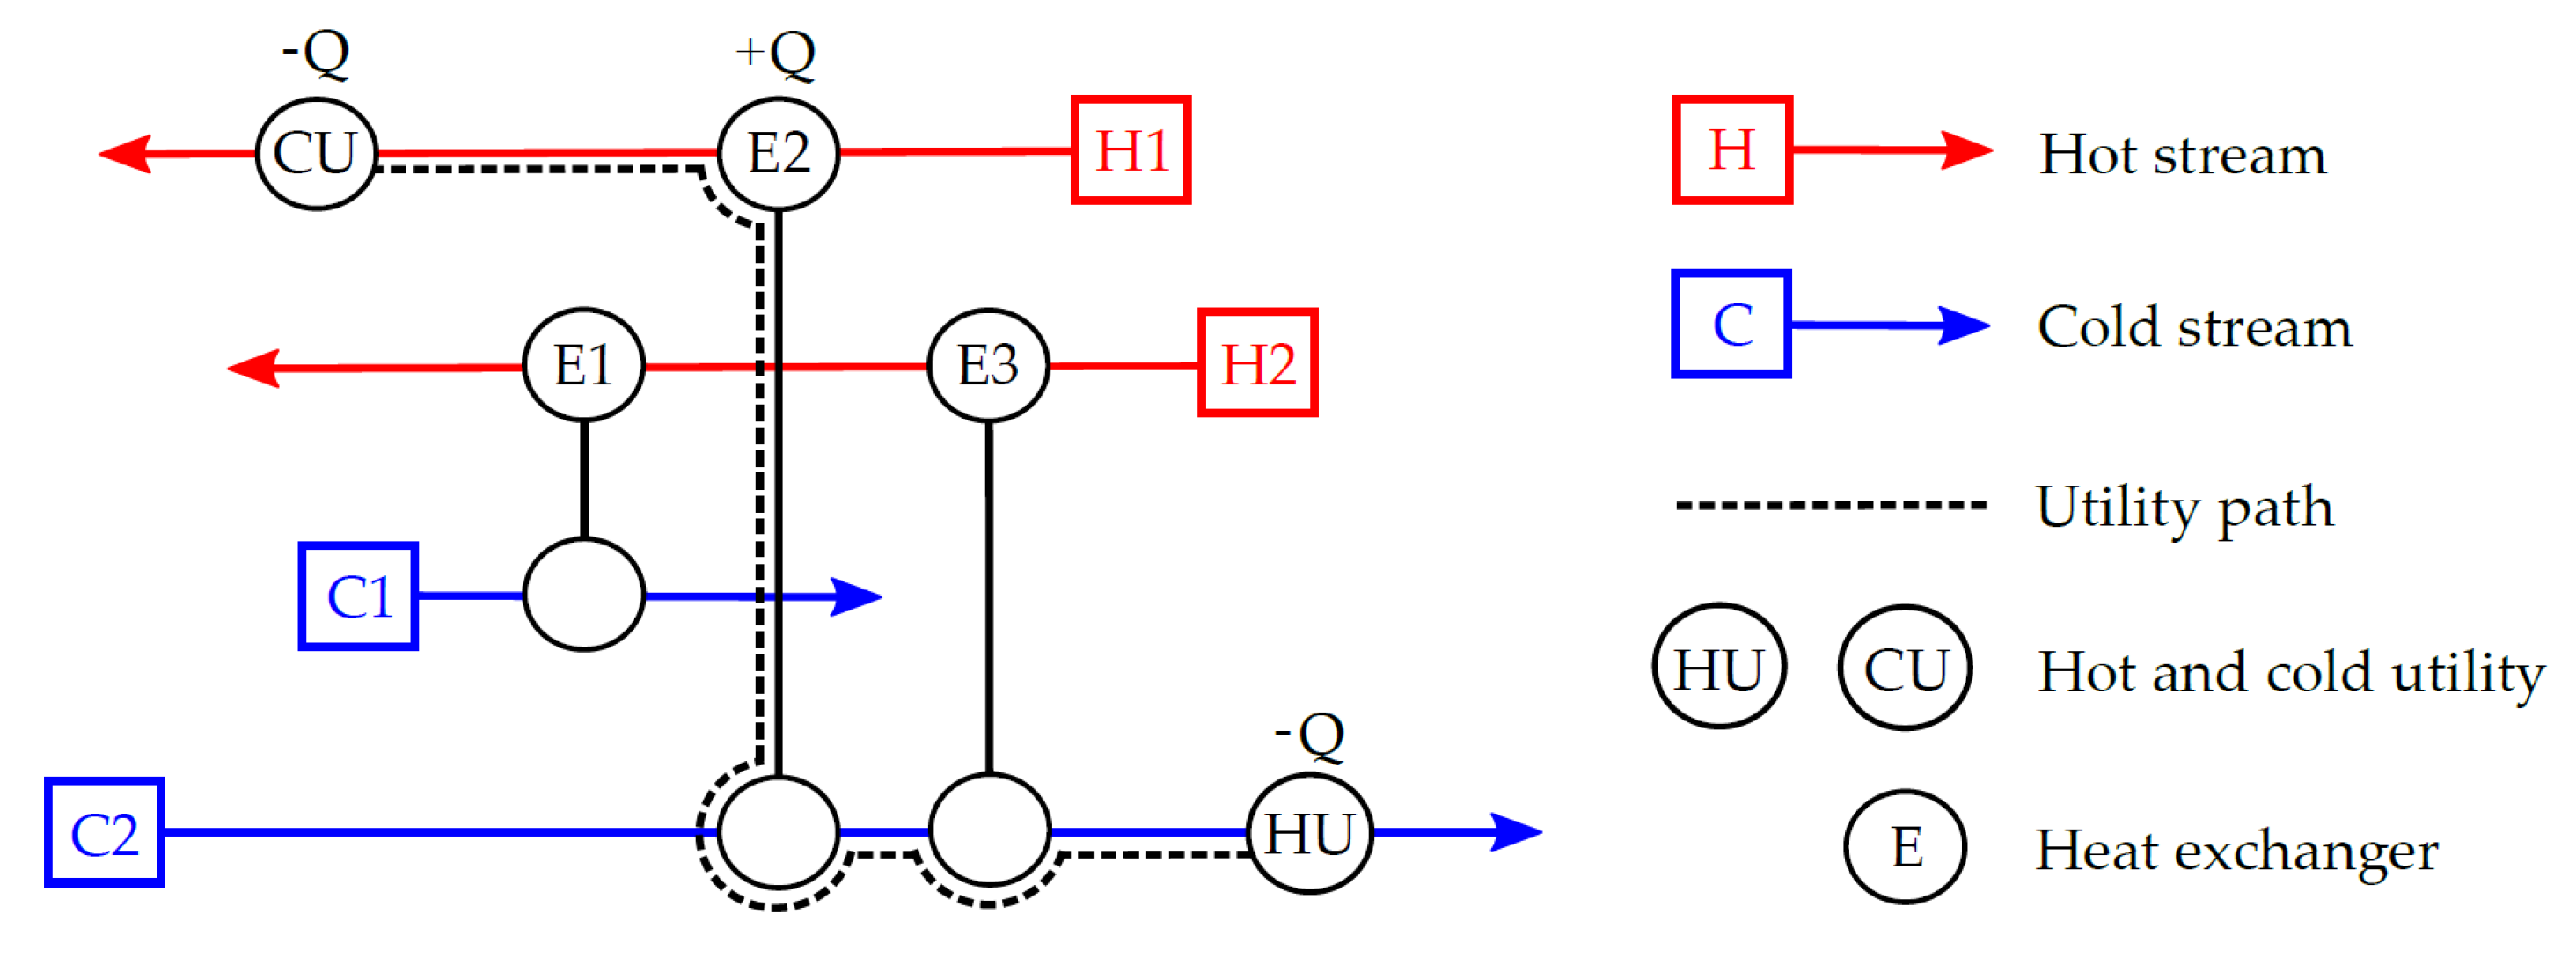 Energies Free Full Text Practical Energy Retrofit Of Heat Exchanger Network Not Containing Utility Path Html